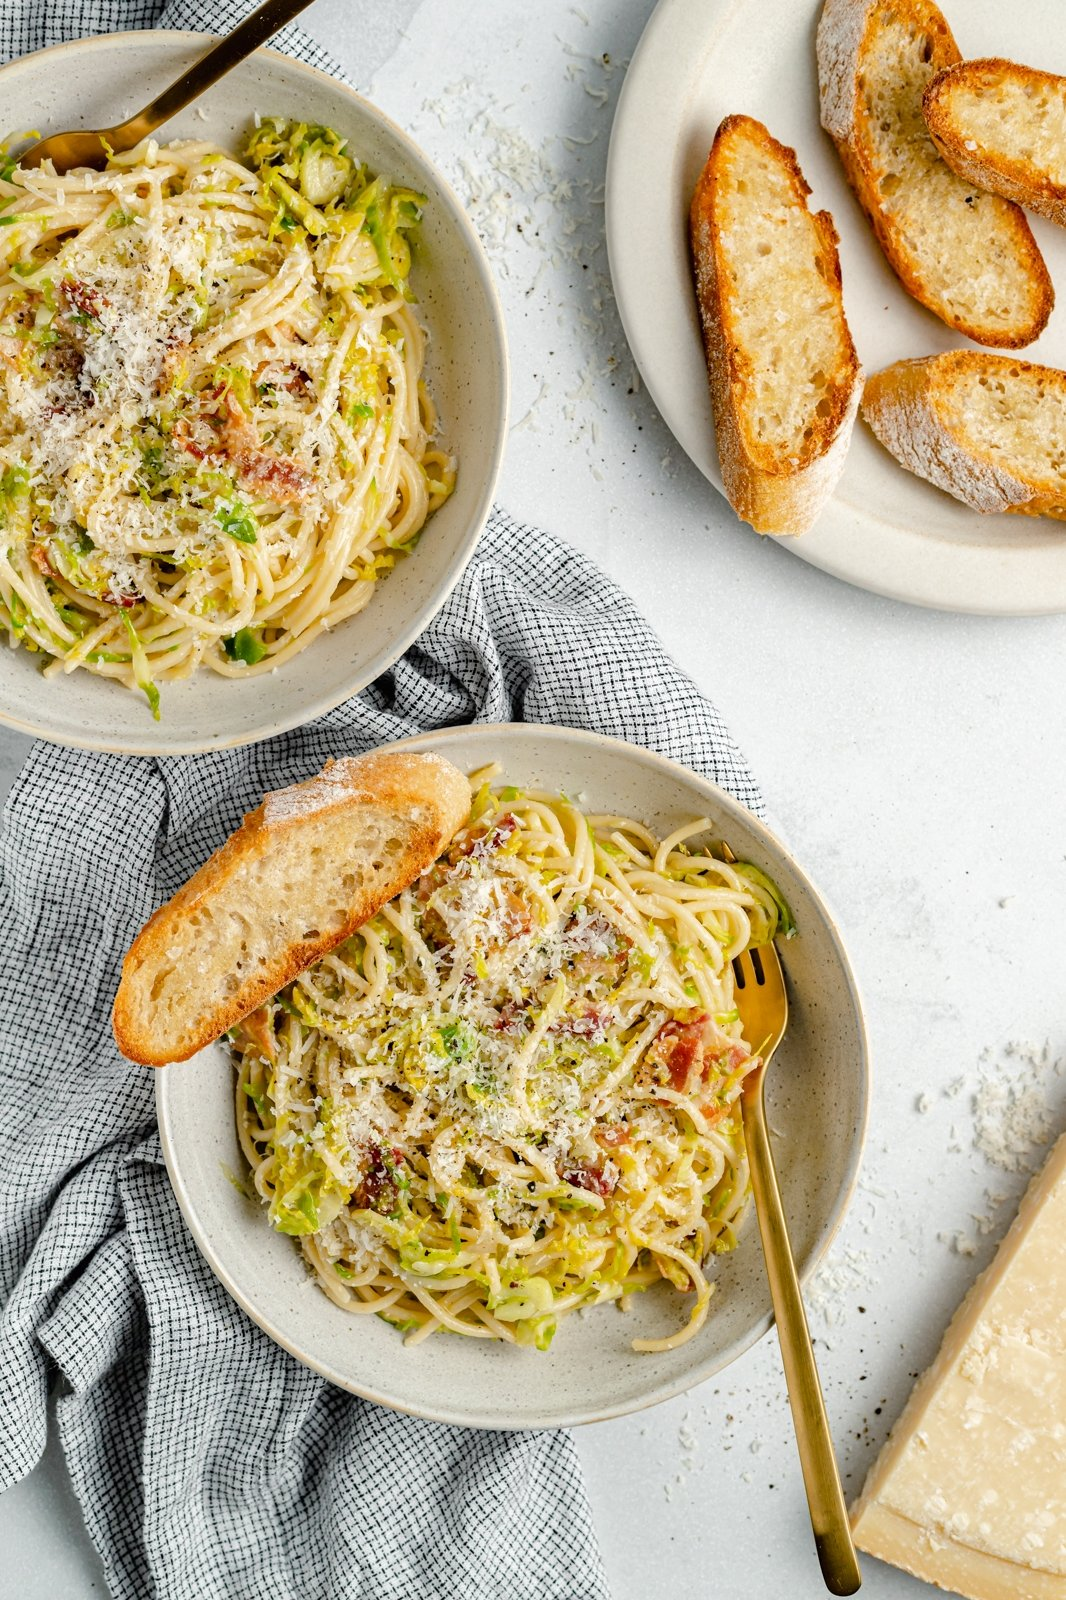 easy brussels sprouts spaghetti with bacon in bowls with garlic bread